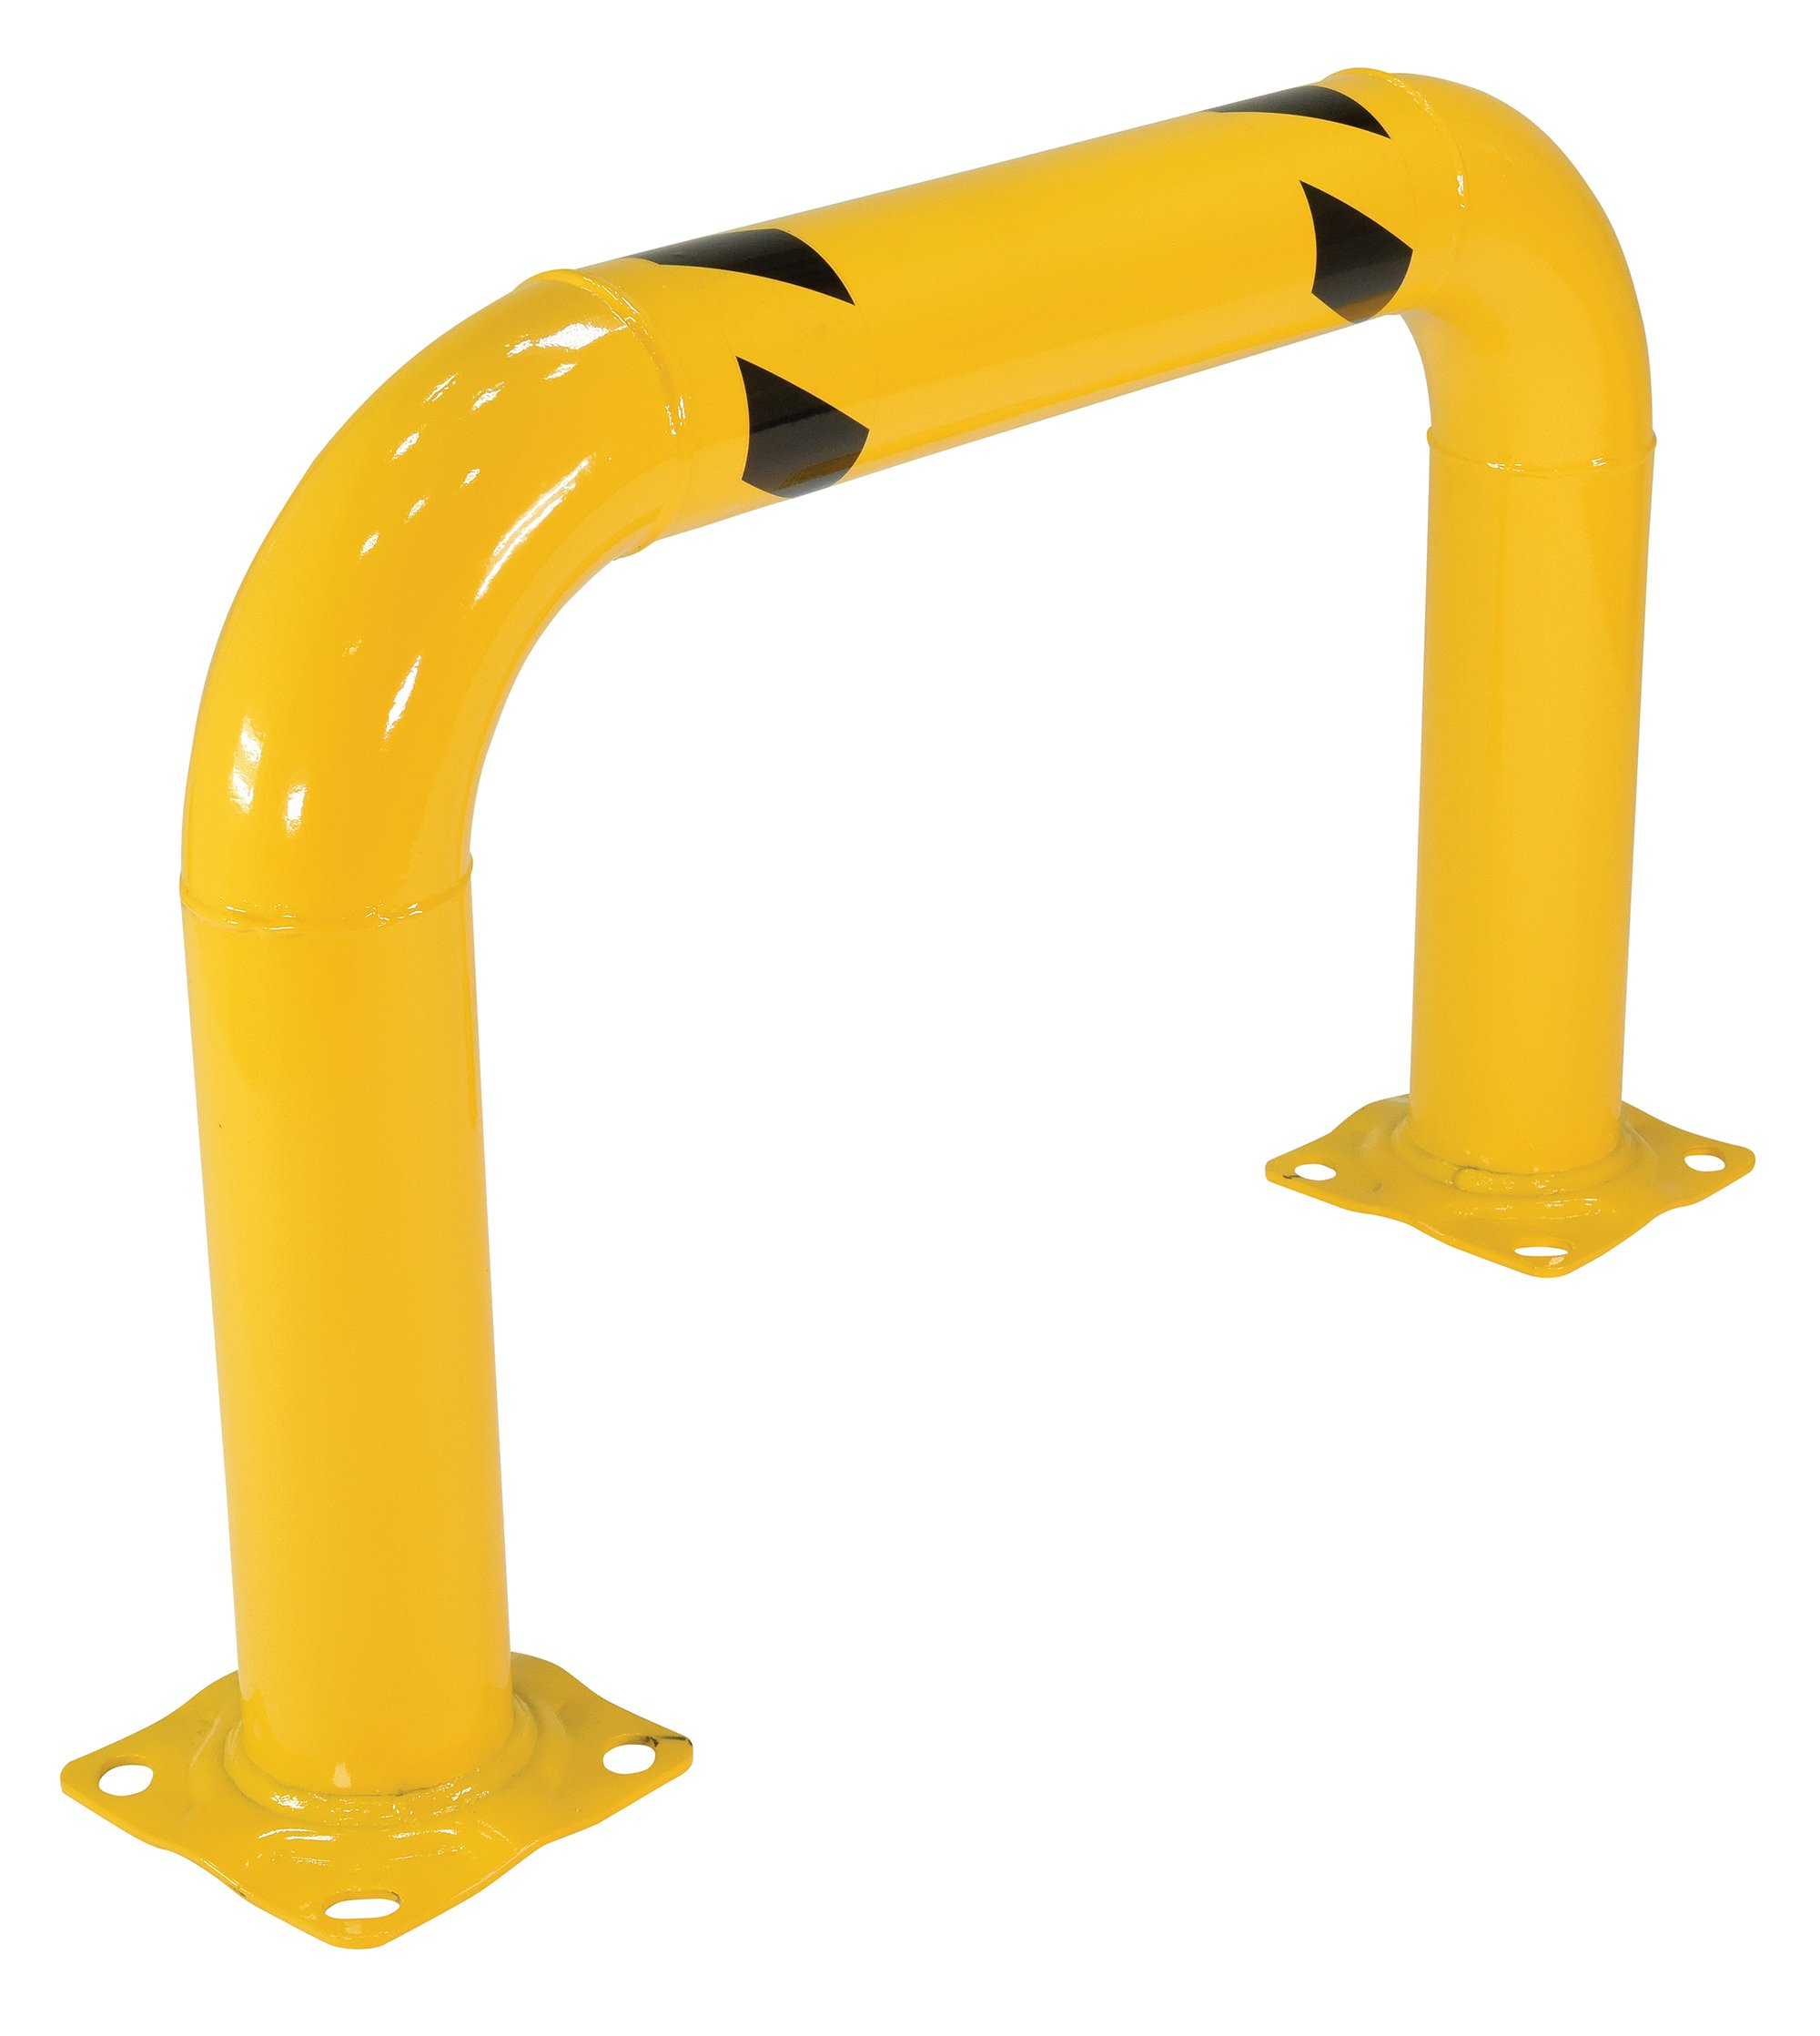 Vestil HPRO-36-24-4 Yellow Powder Coat High Profile Machinery Guard, Welded Steel, 4-1/2'' OD, 36'' Length, 24'' Height